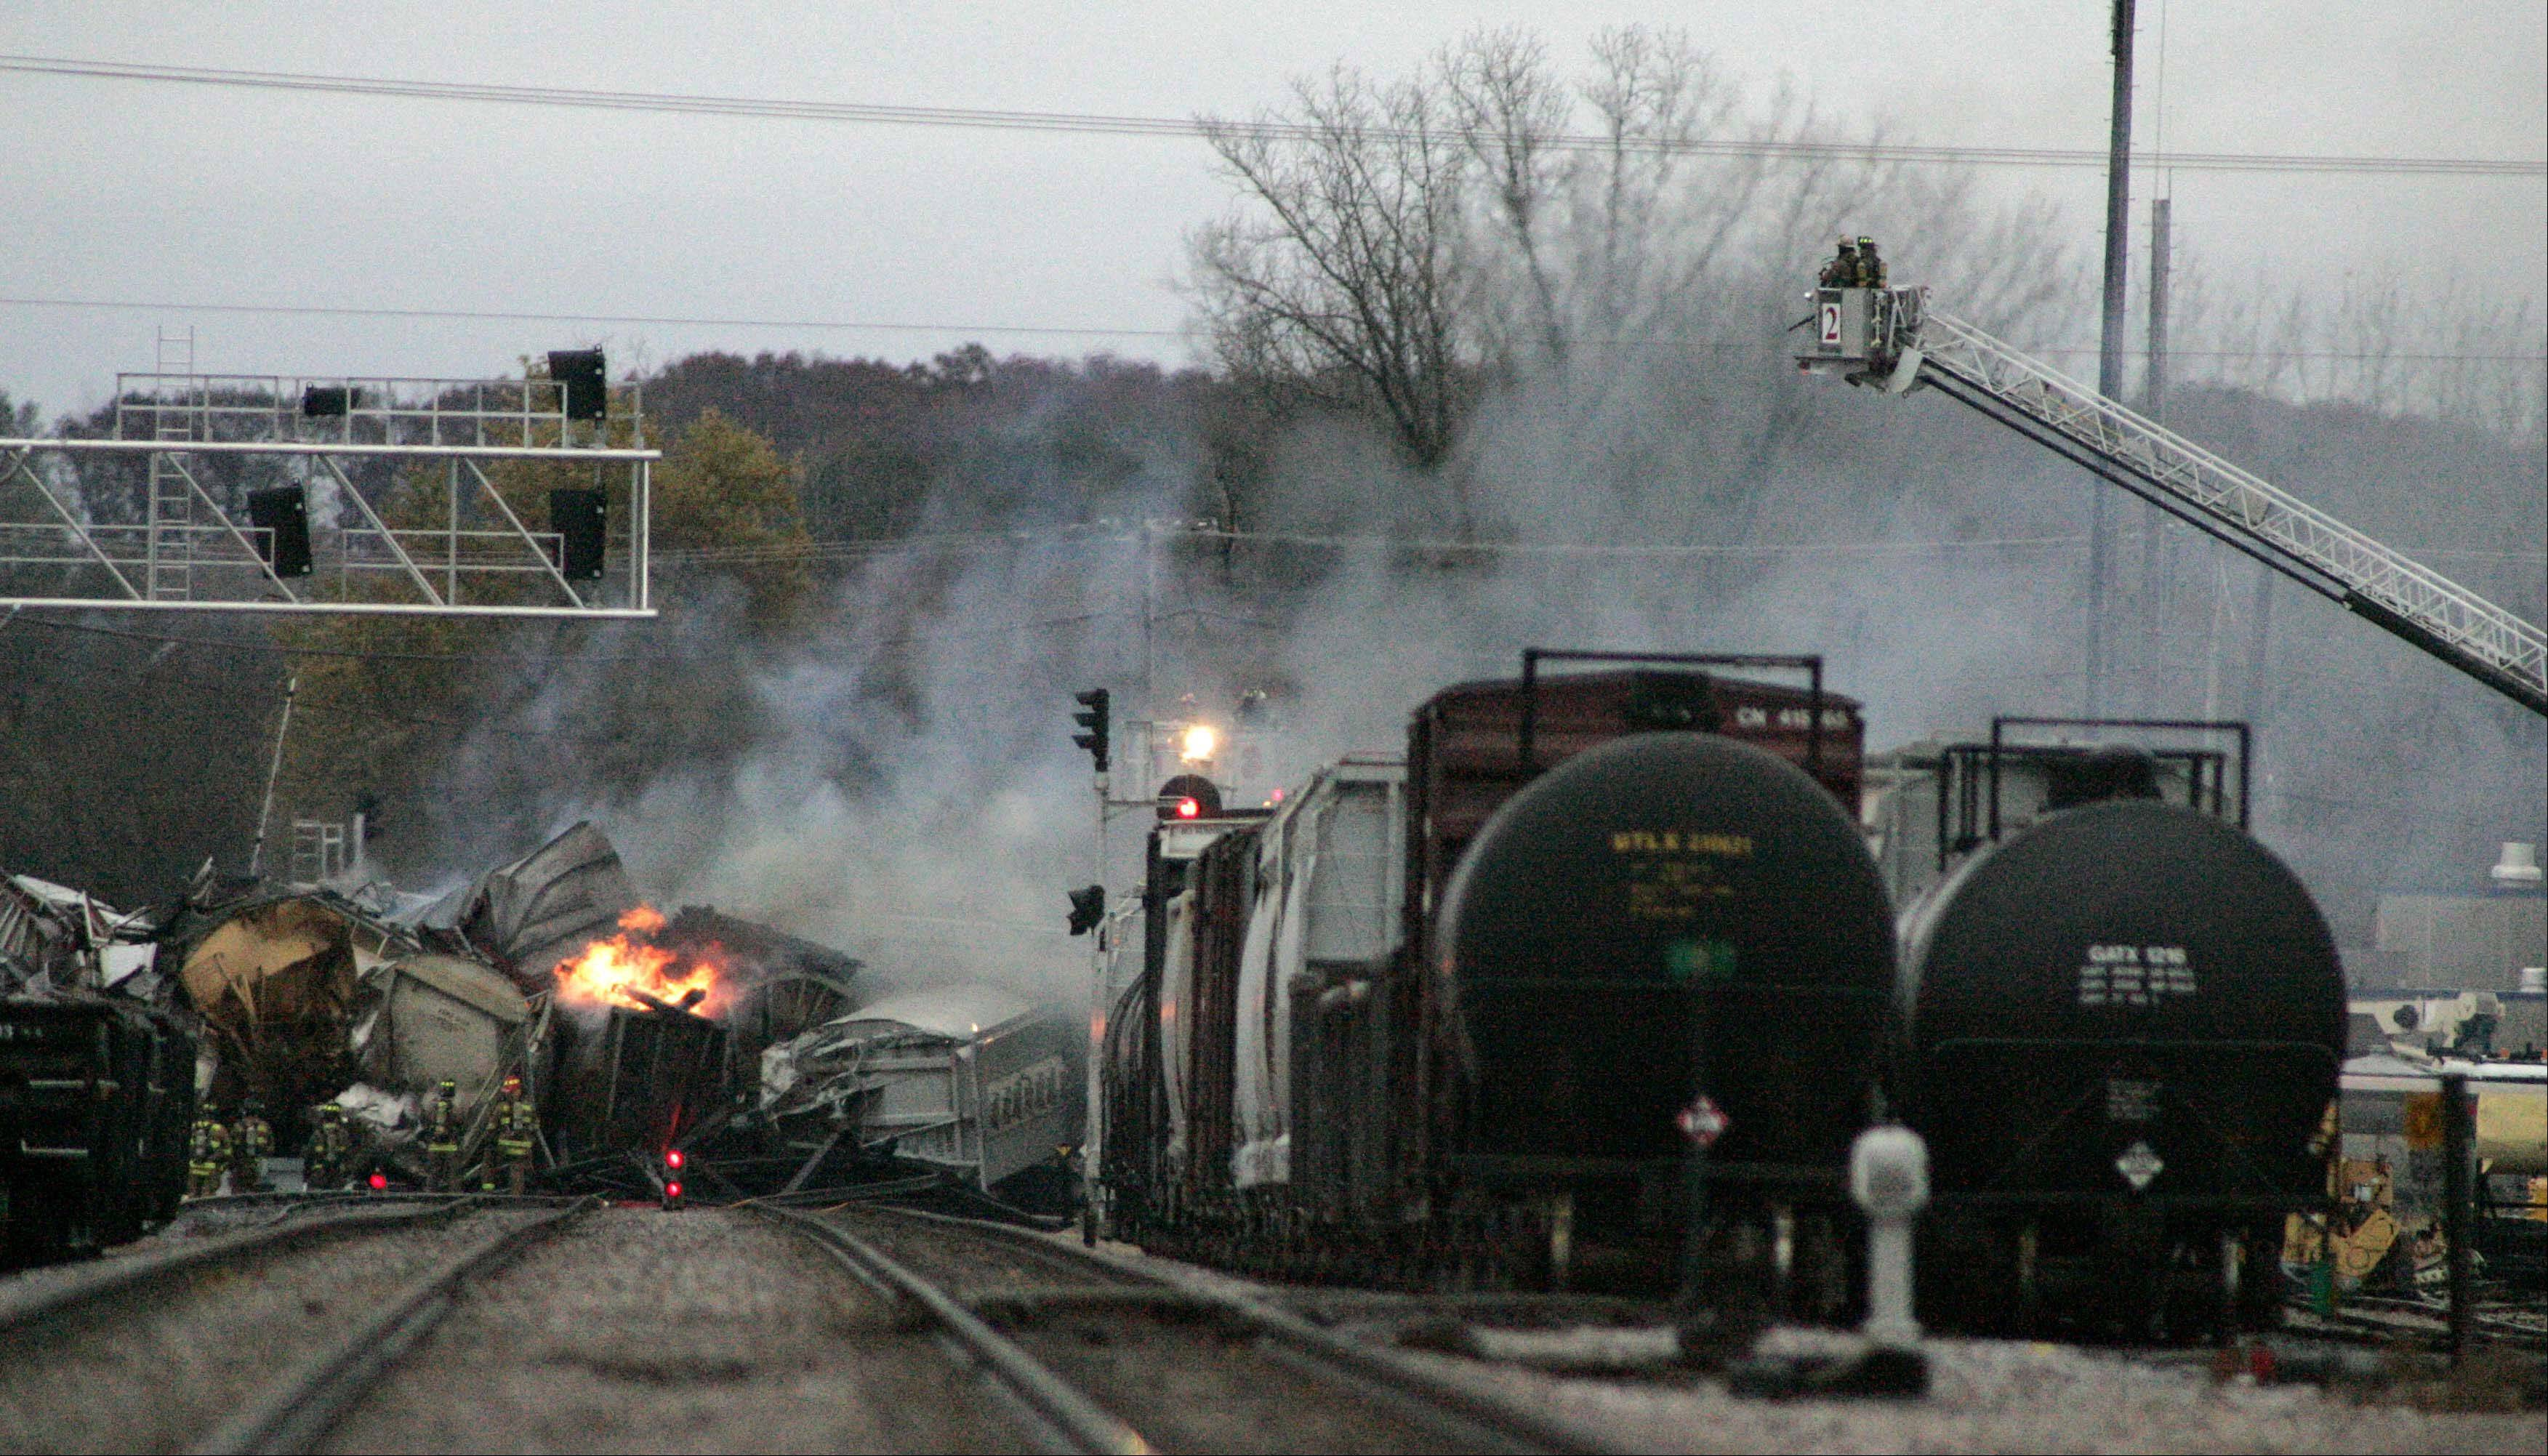 Smoke rises from a train derailment involving eight cars on the border of Elgin and Bartlett on Nov. 3, 2011.